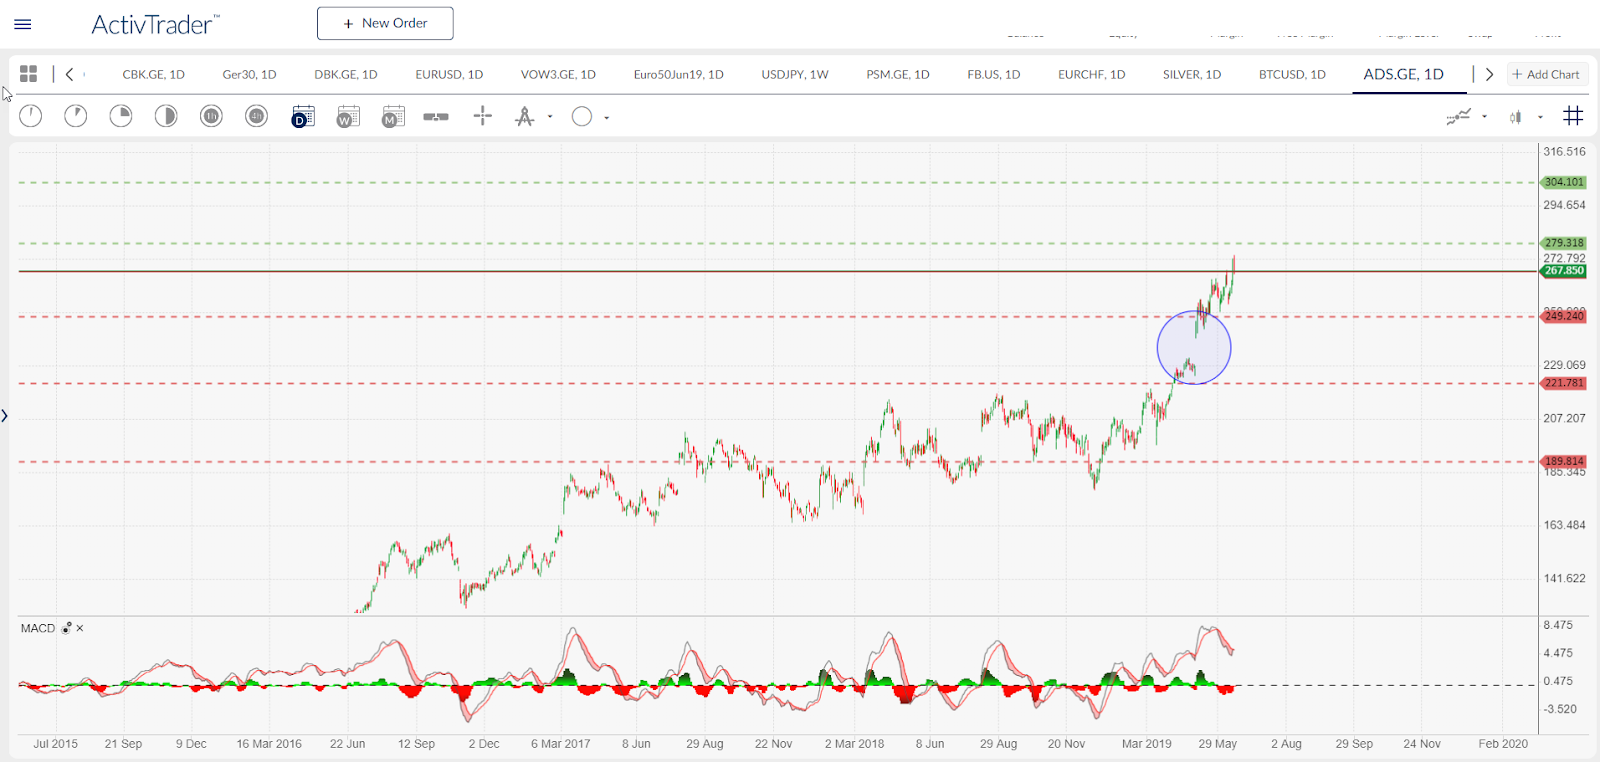 ADS.GE - daily chart. Source: ActivTrader